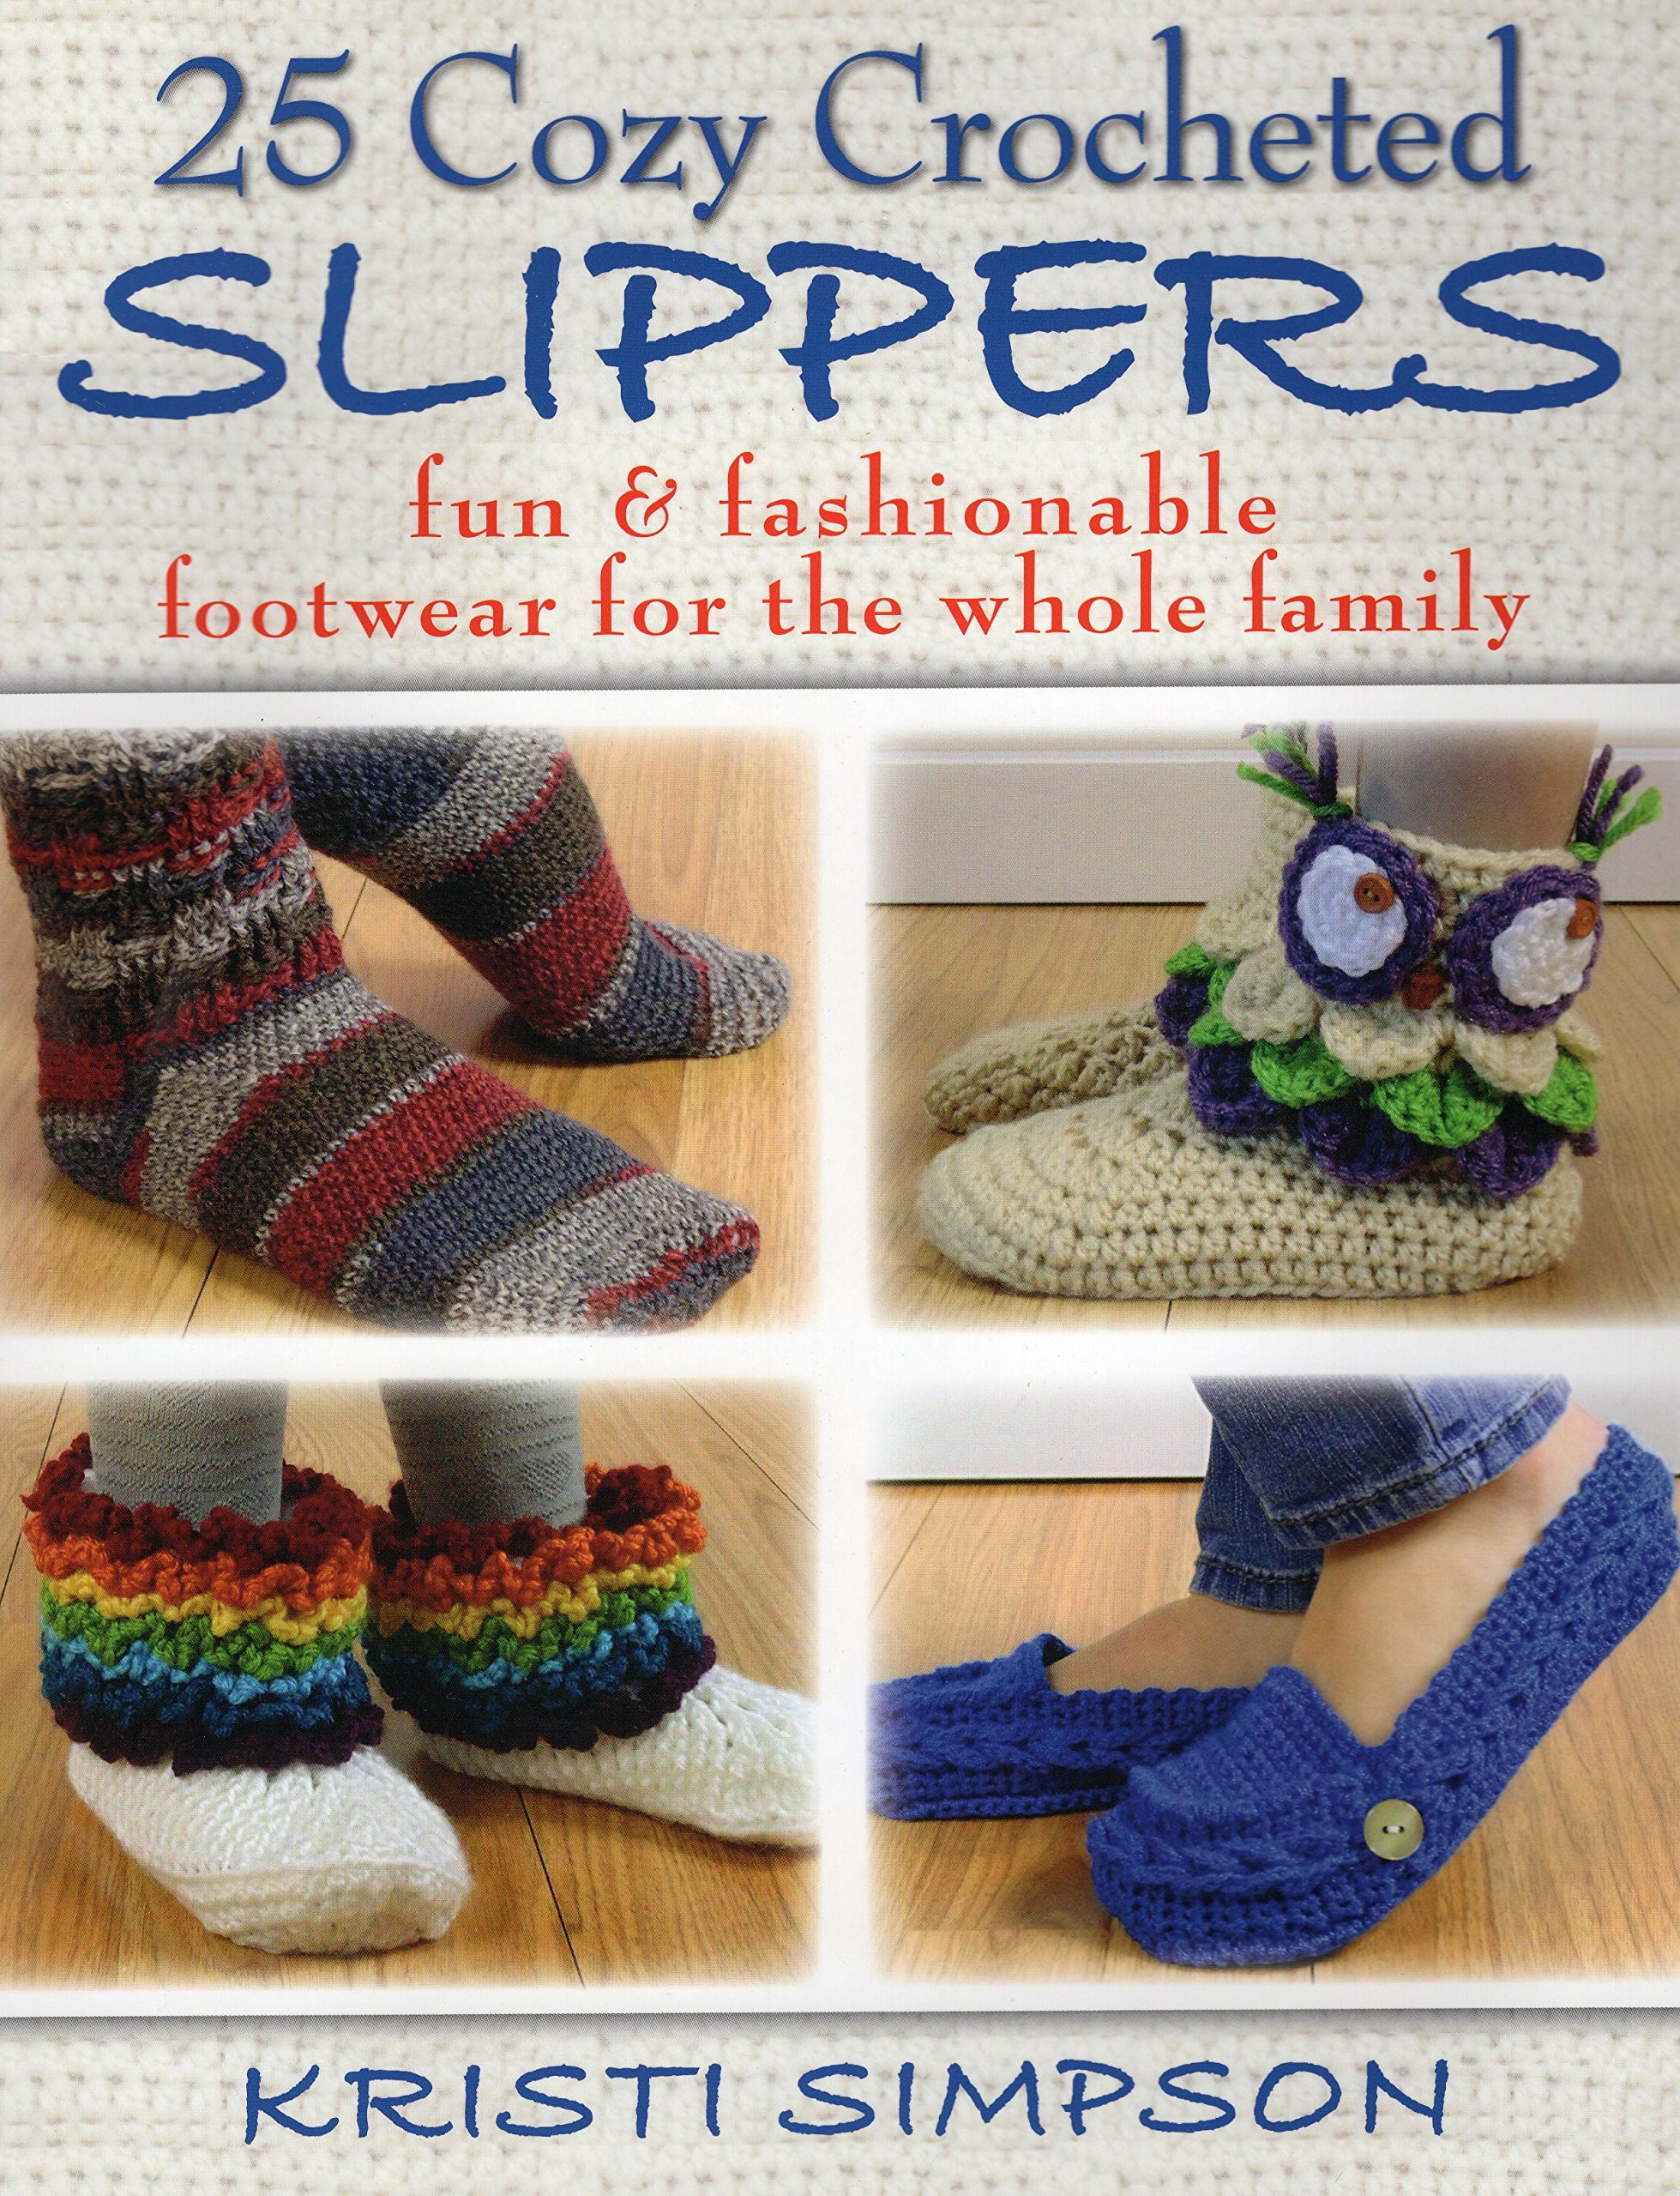 25 Cozy Crocheted Slippers: Fun & Fashionable Footwear for the Whole ...